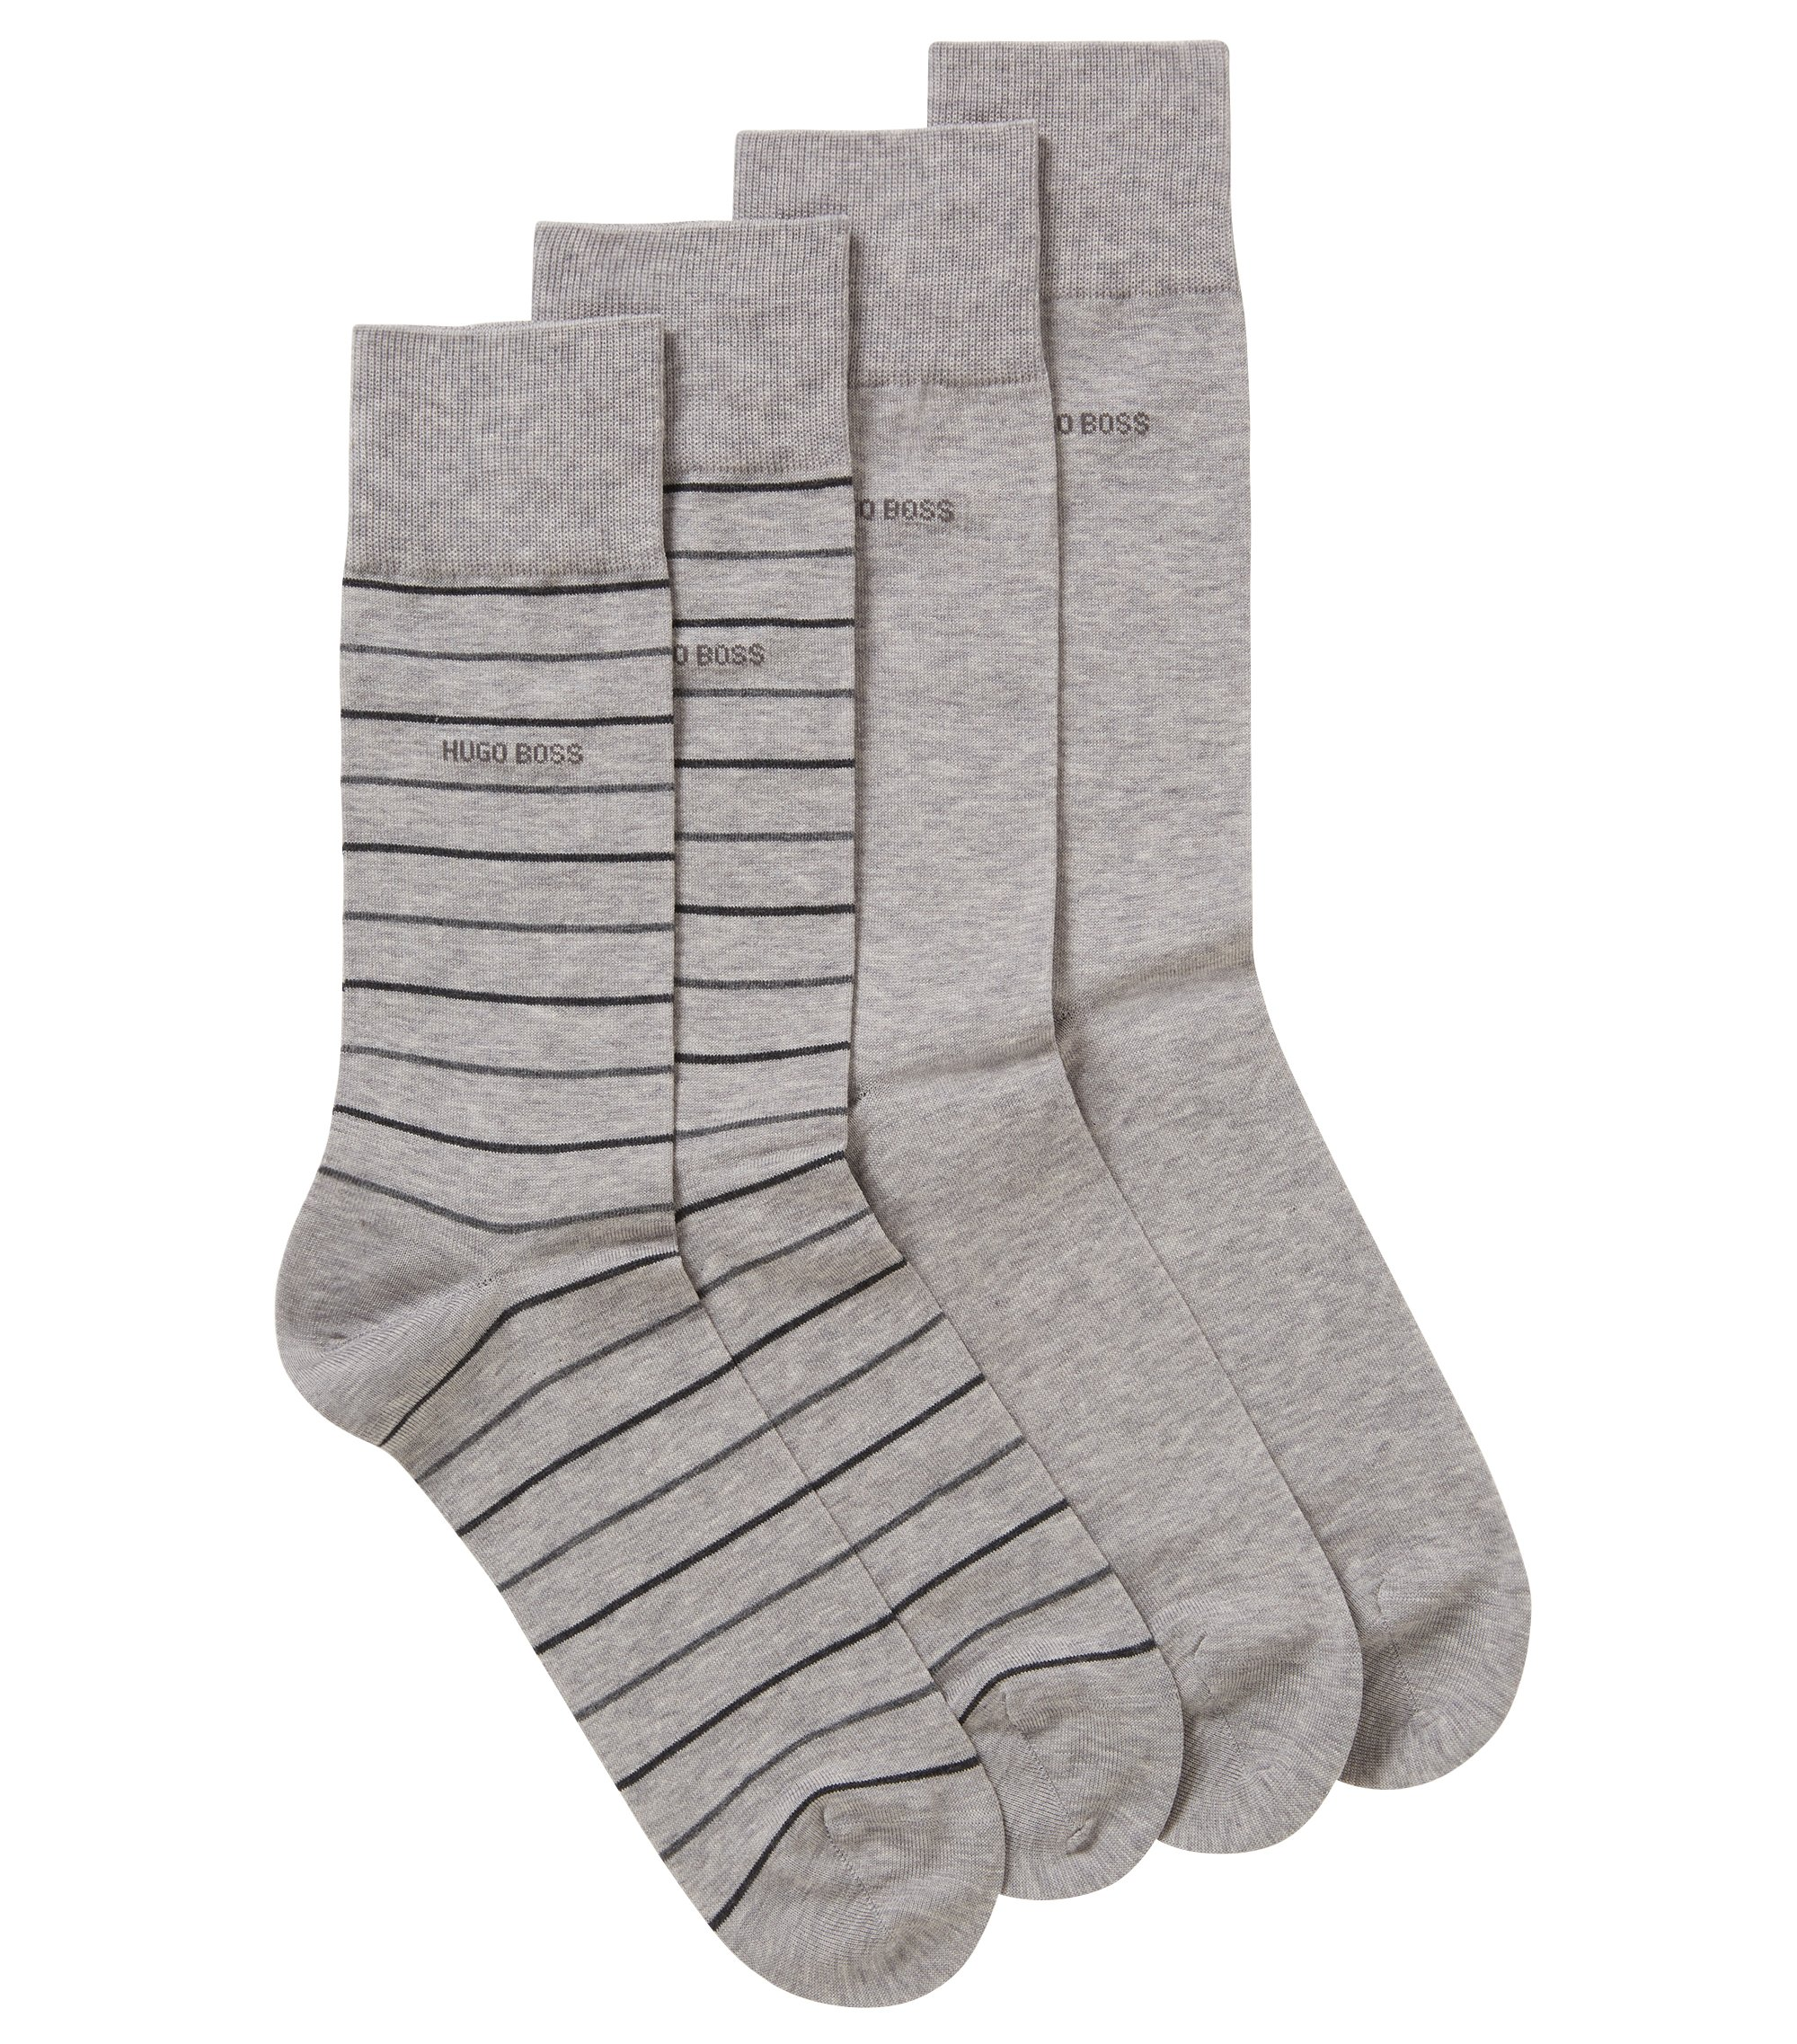 Two-pack of regular-length socks in a mercerized cotton blend, Silver